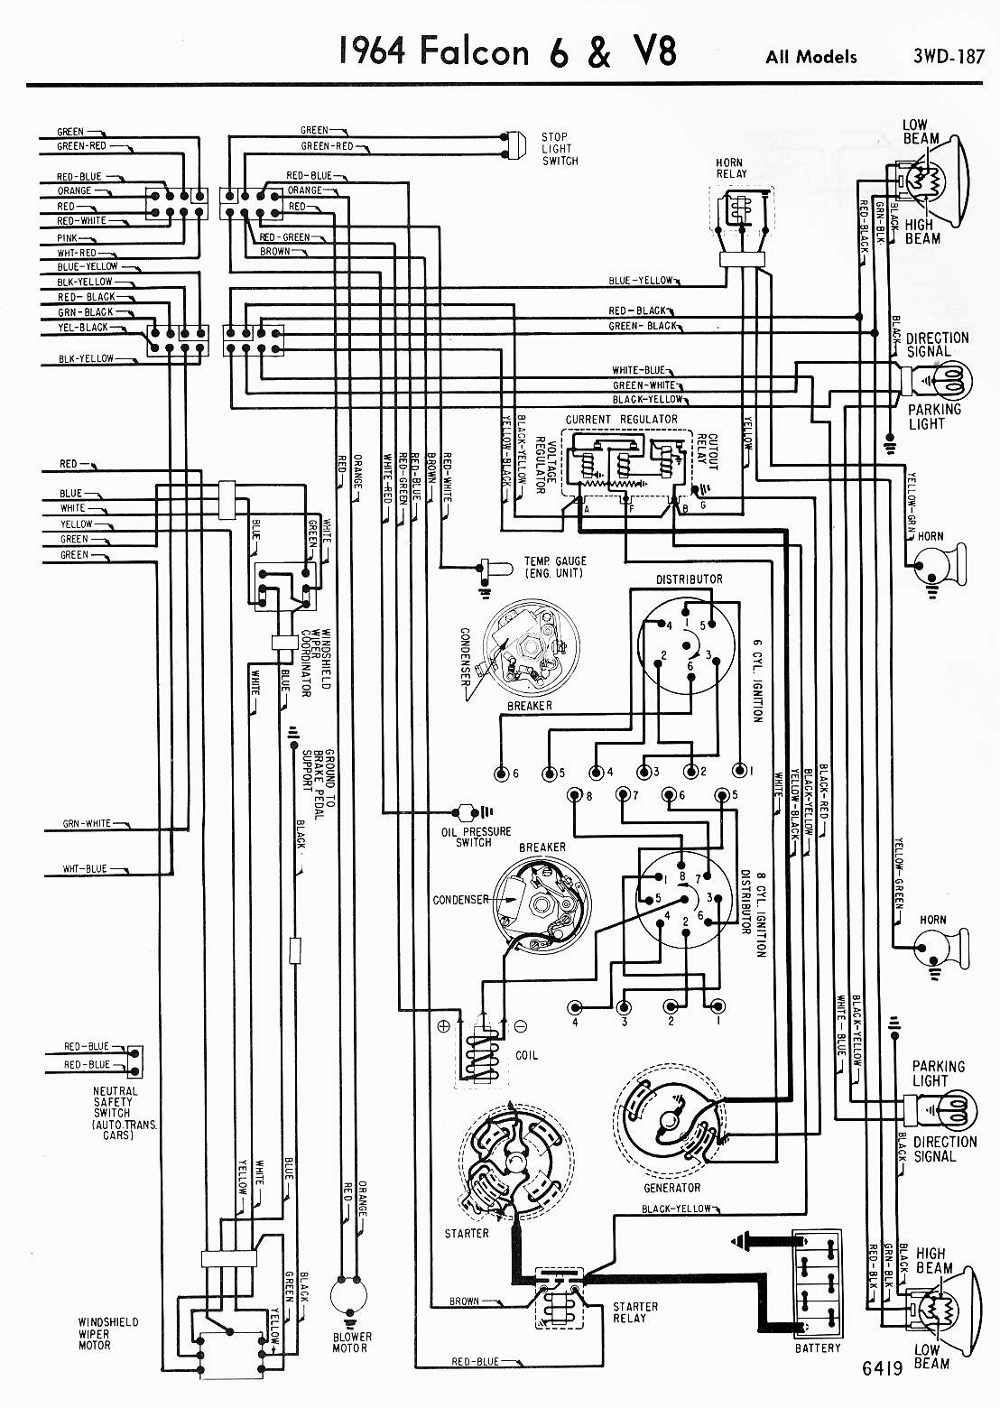 Ford Au V8 Wiring Diagram Great Installation Of Flathead Engine 1964 Falcon Todays Rh 18 17 12 1813weddingbarn Com Car Diagrams